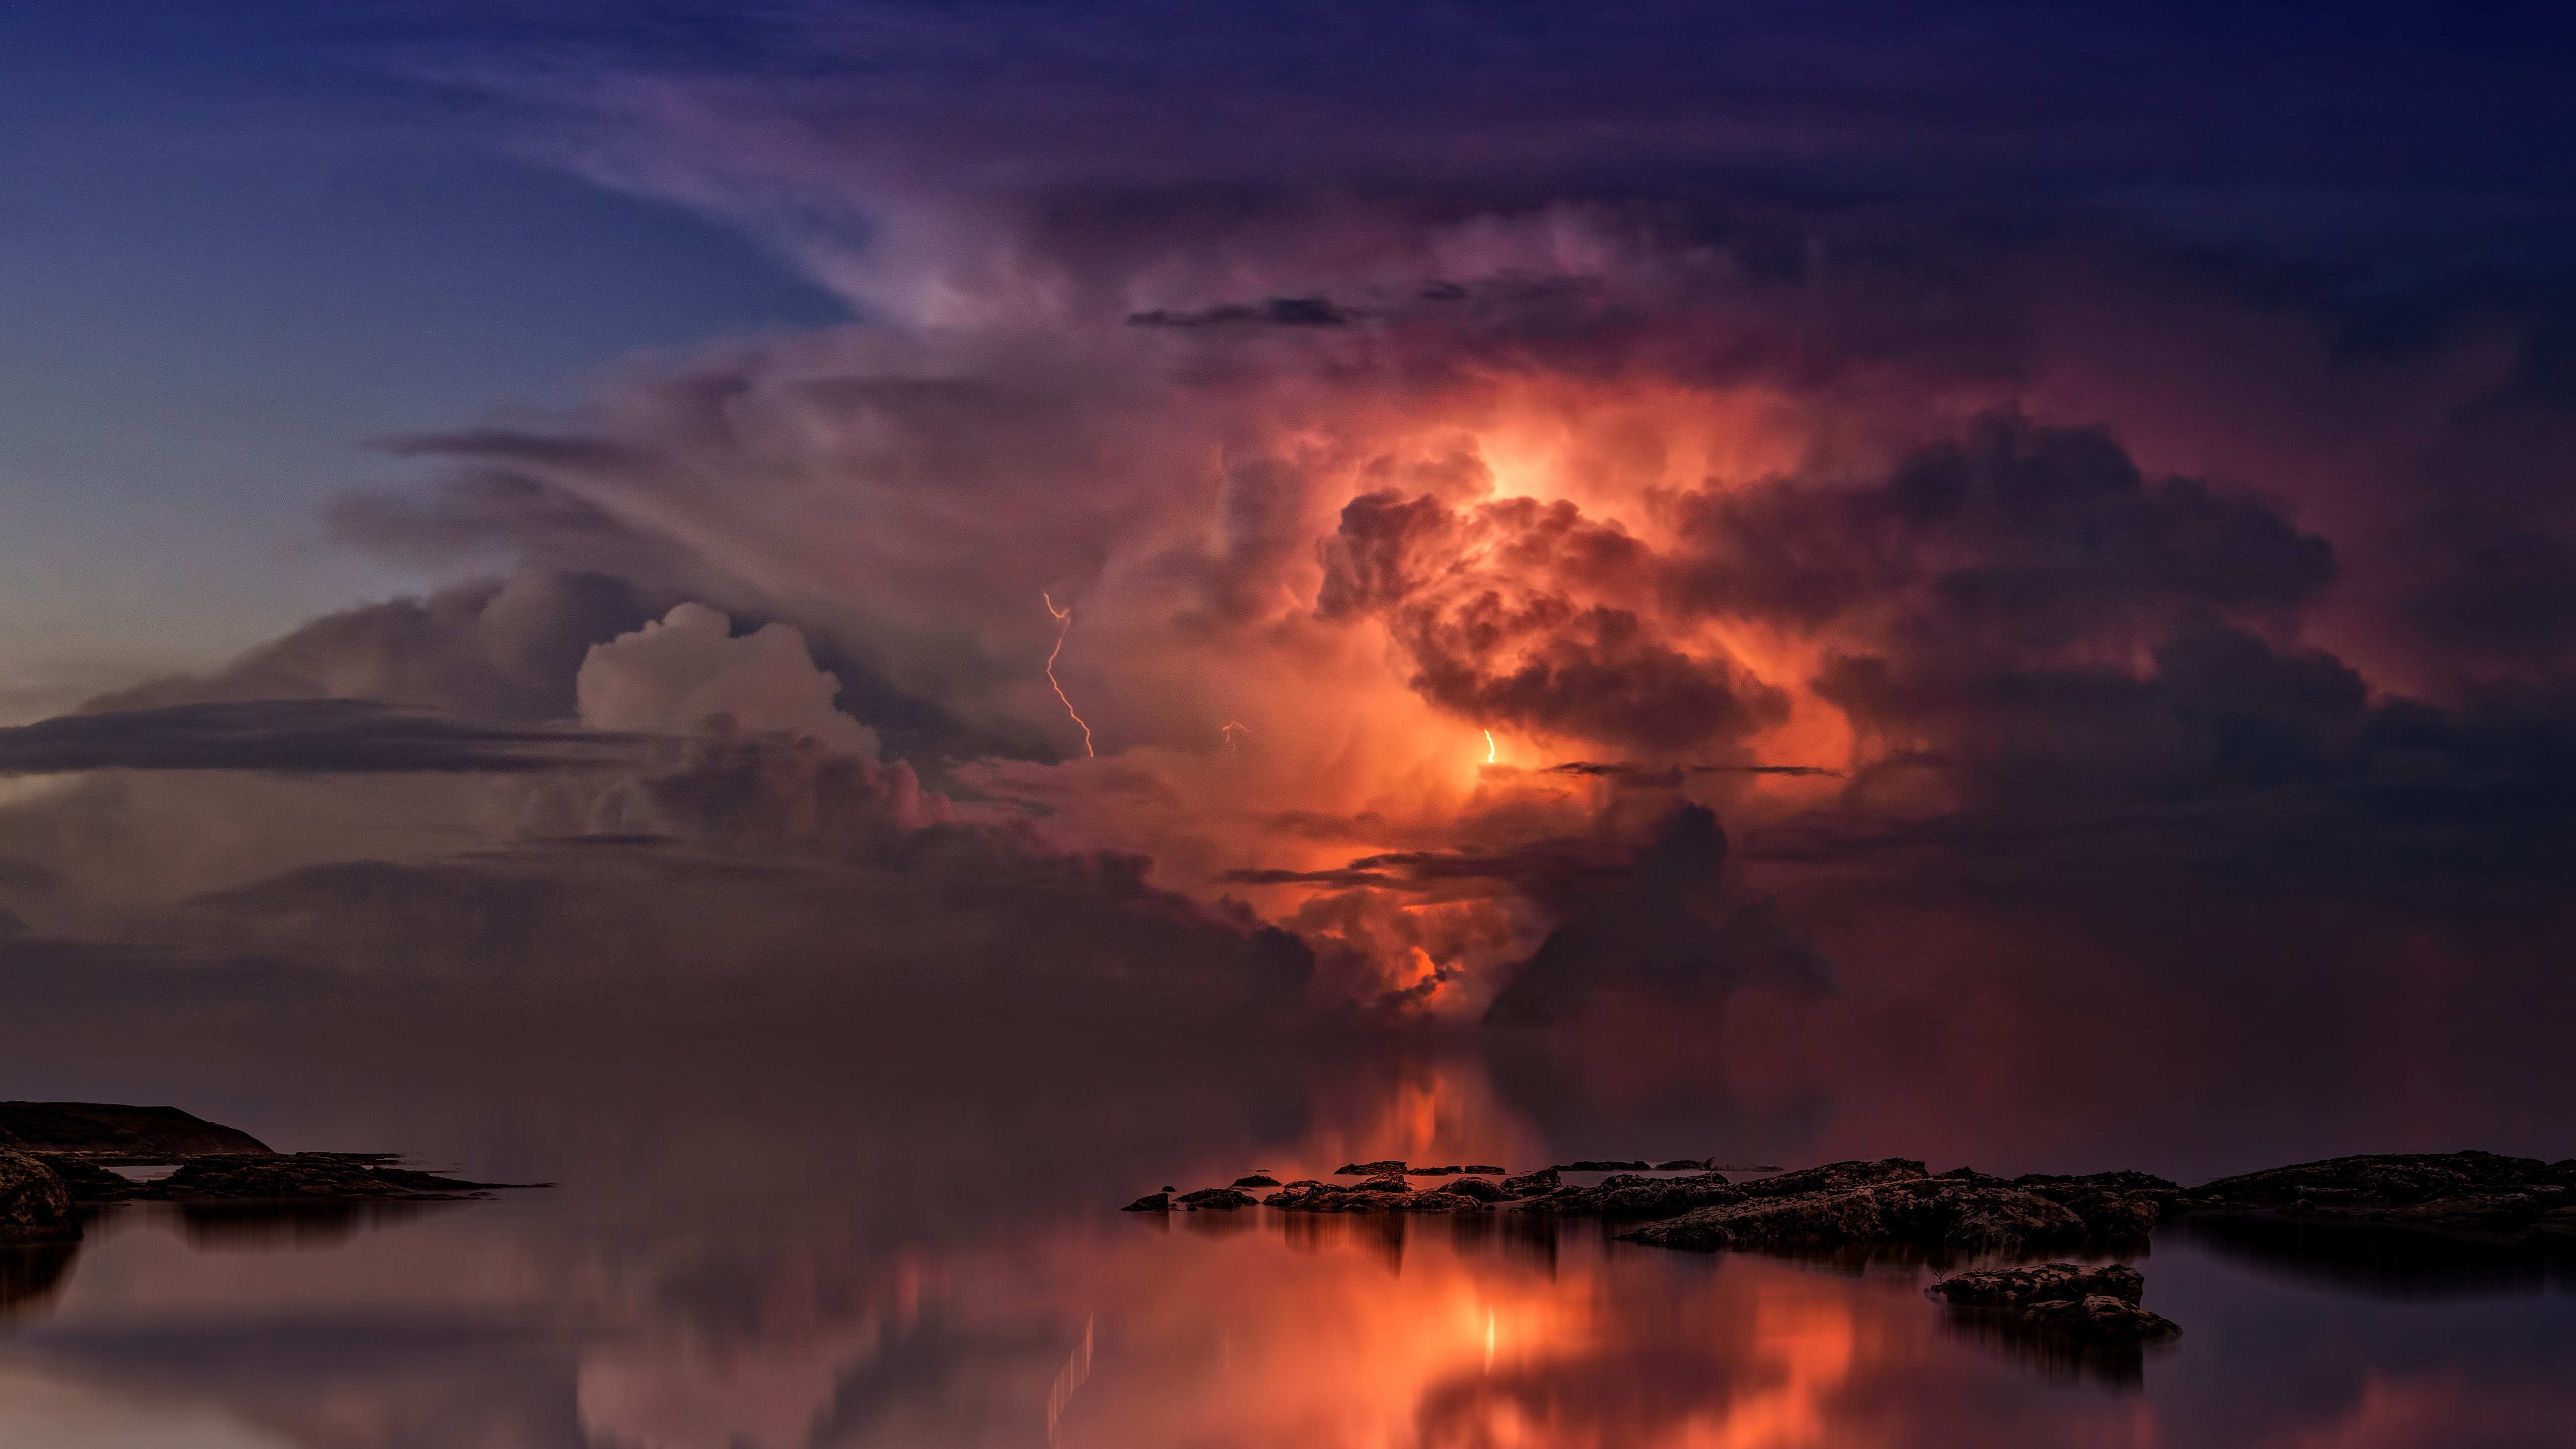 Lightning and thunderstorm in the sky wallpaper 5120x2880